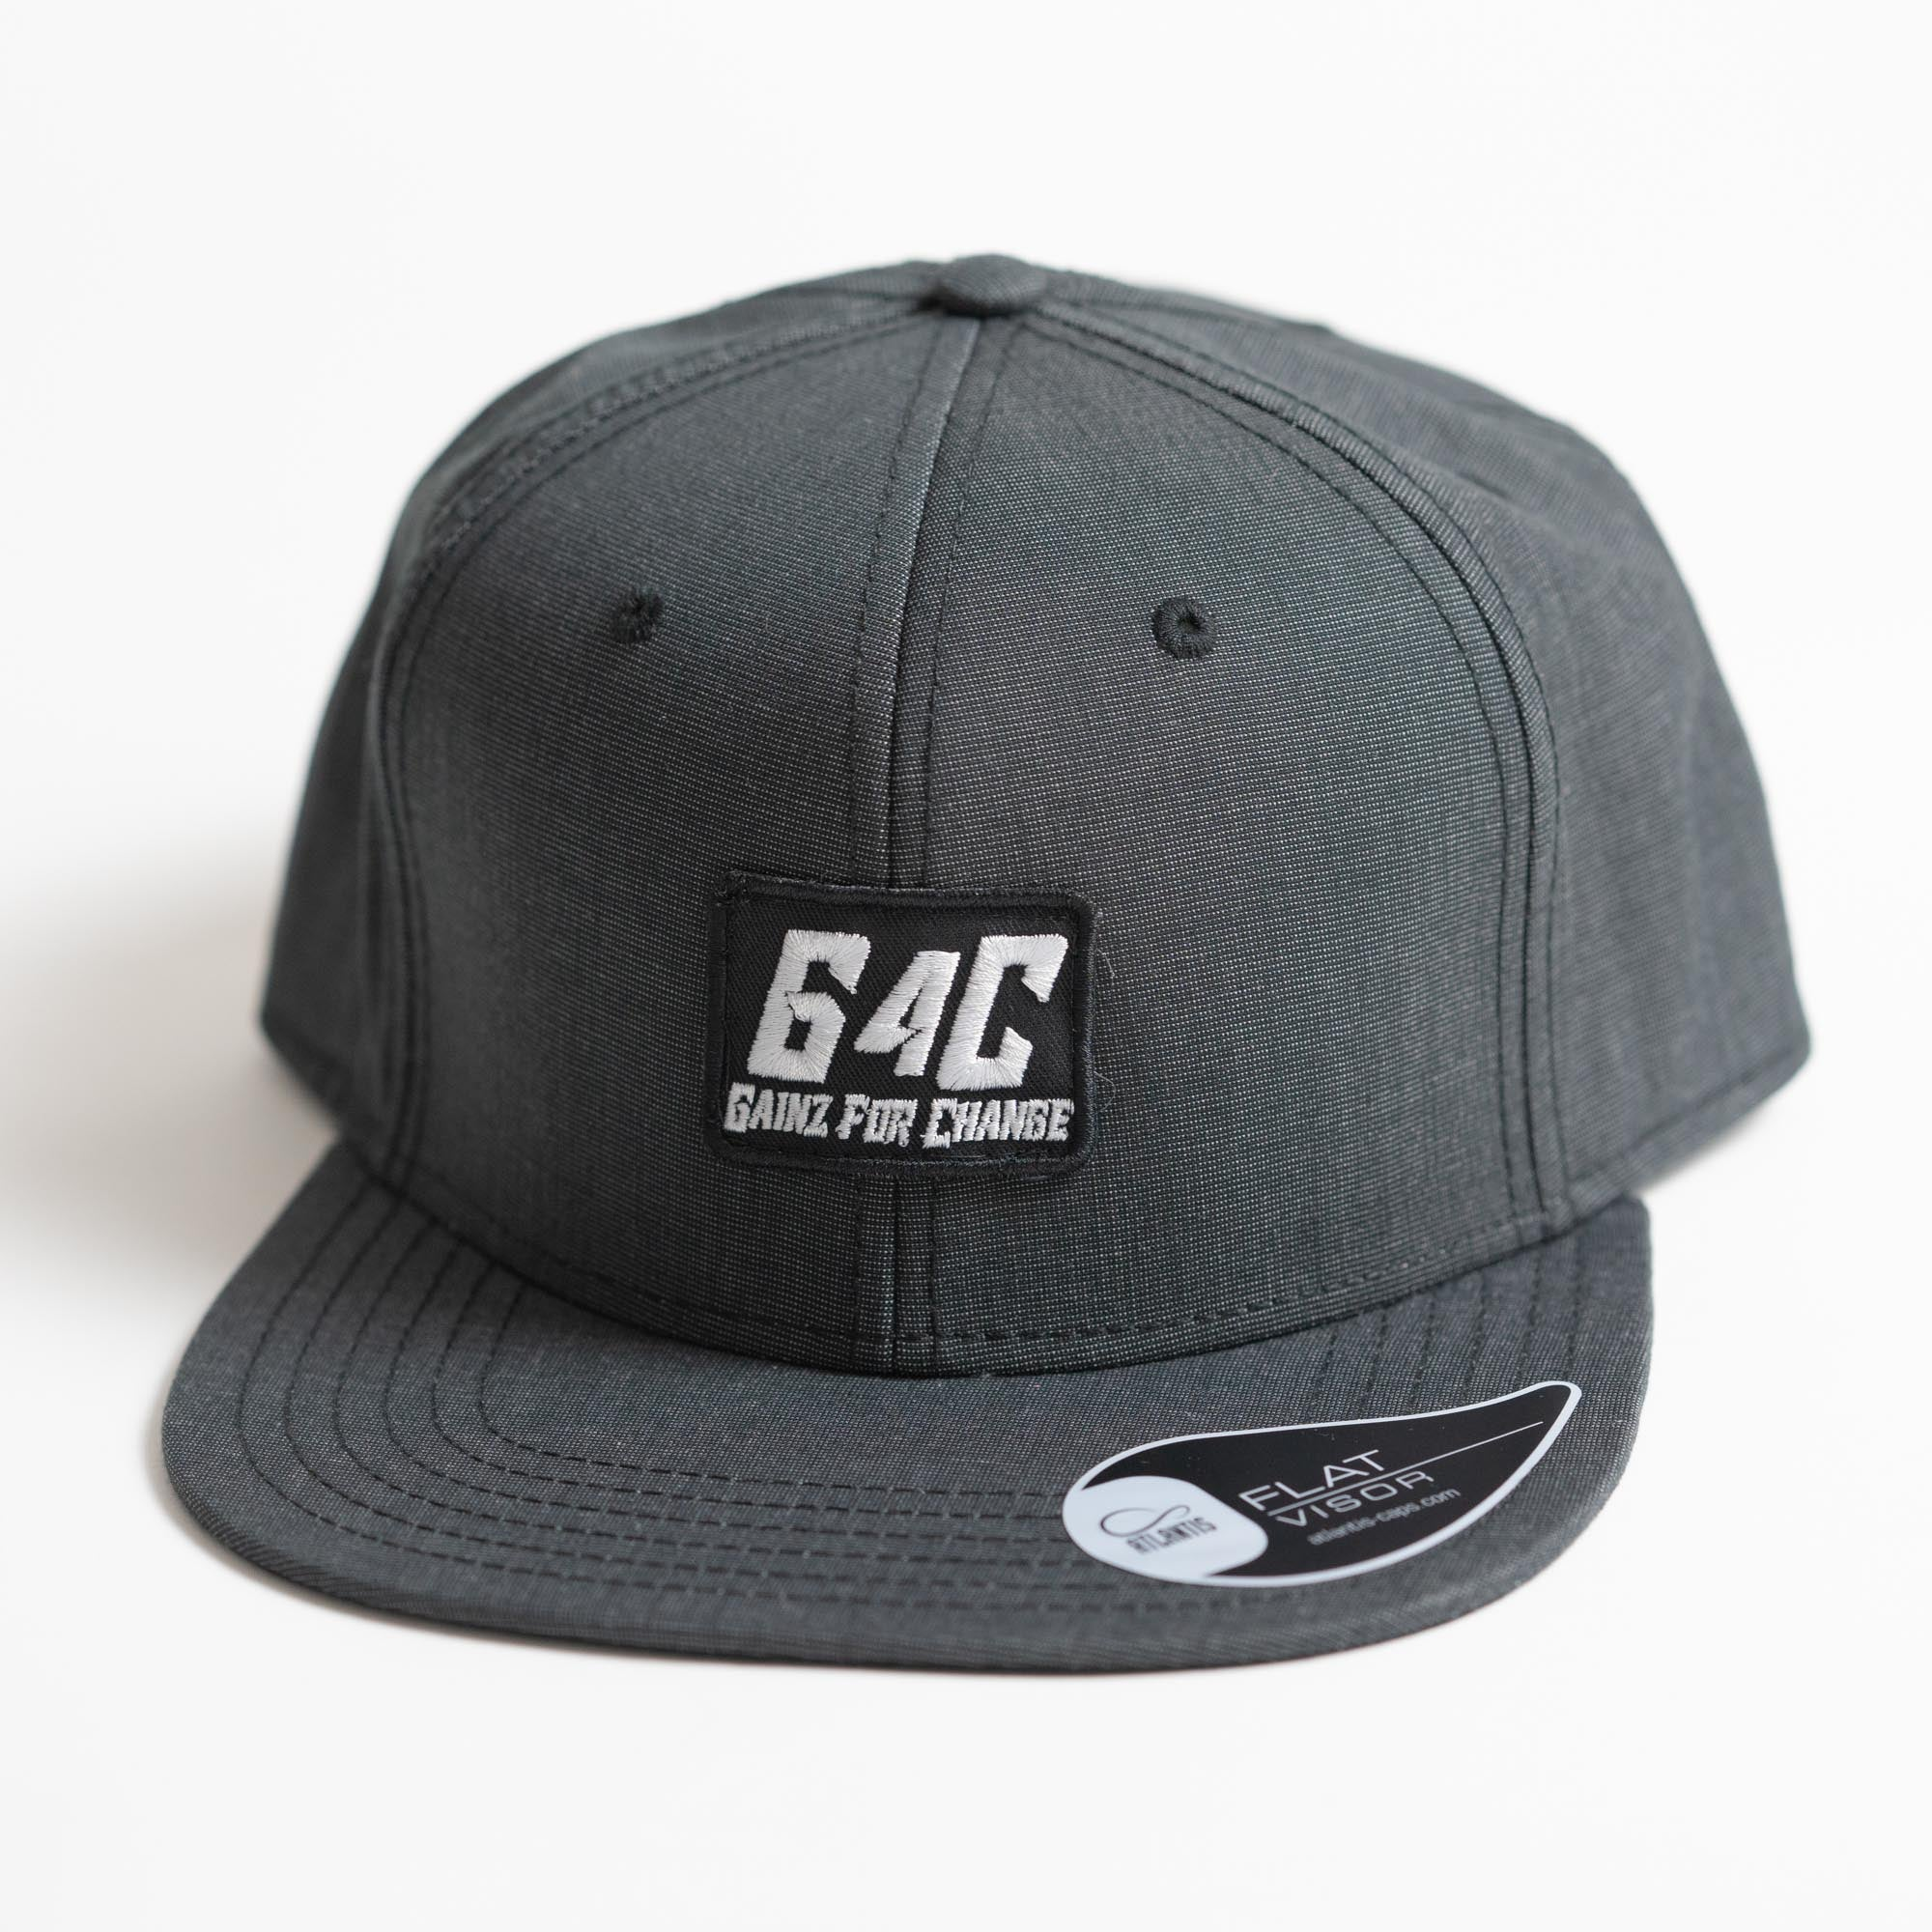 Gainz4Change Elementary Cap dark grey